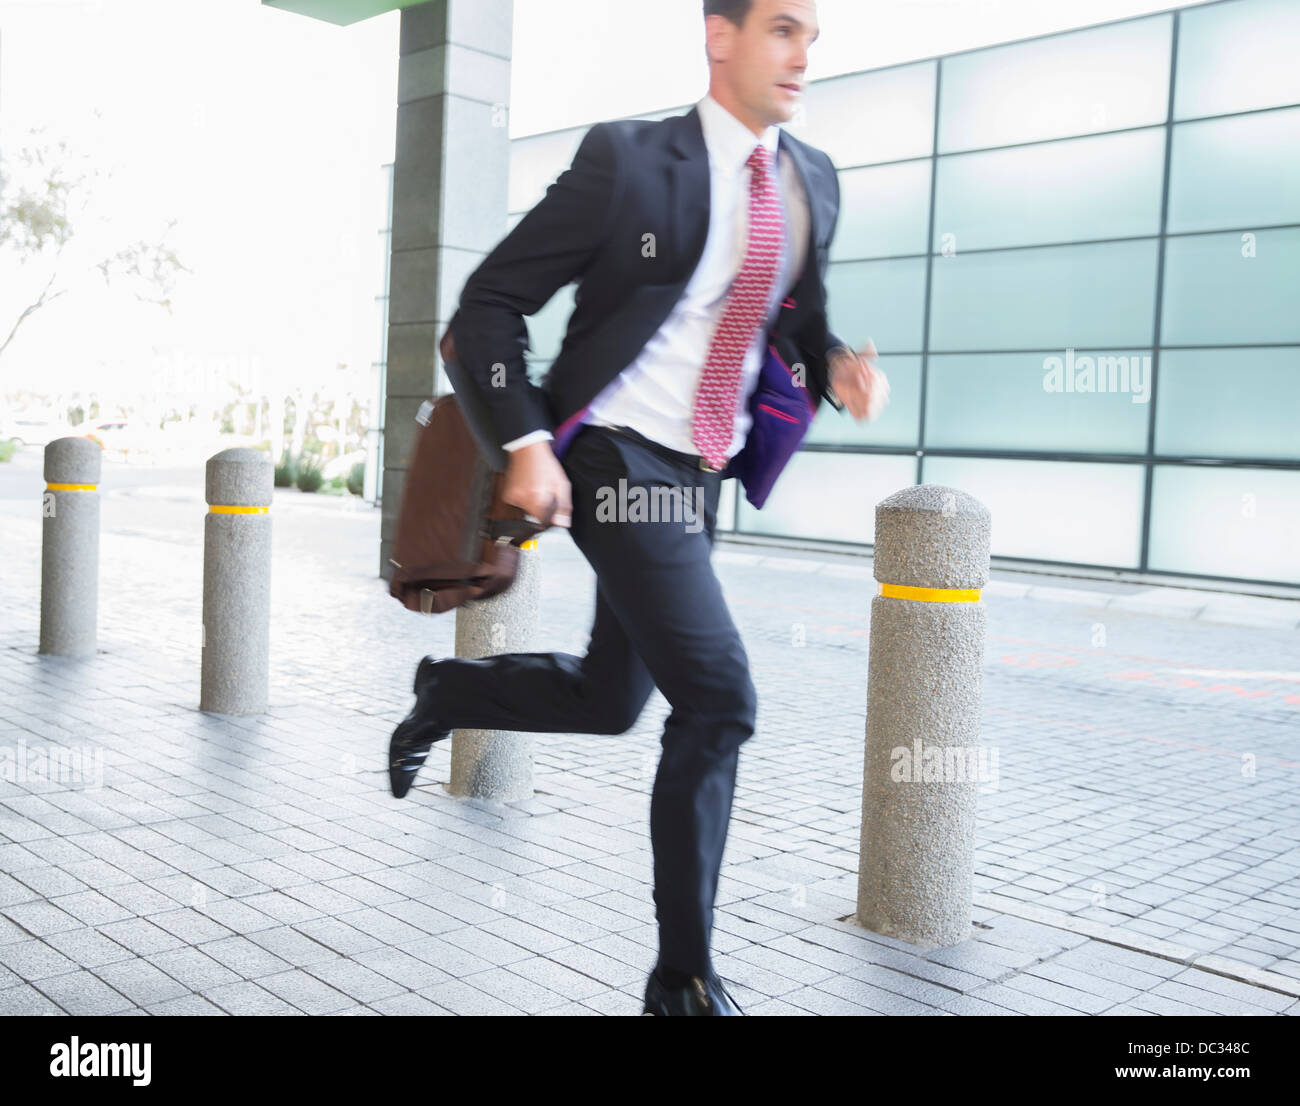 Businessman with briefcase running - Stock Image